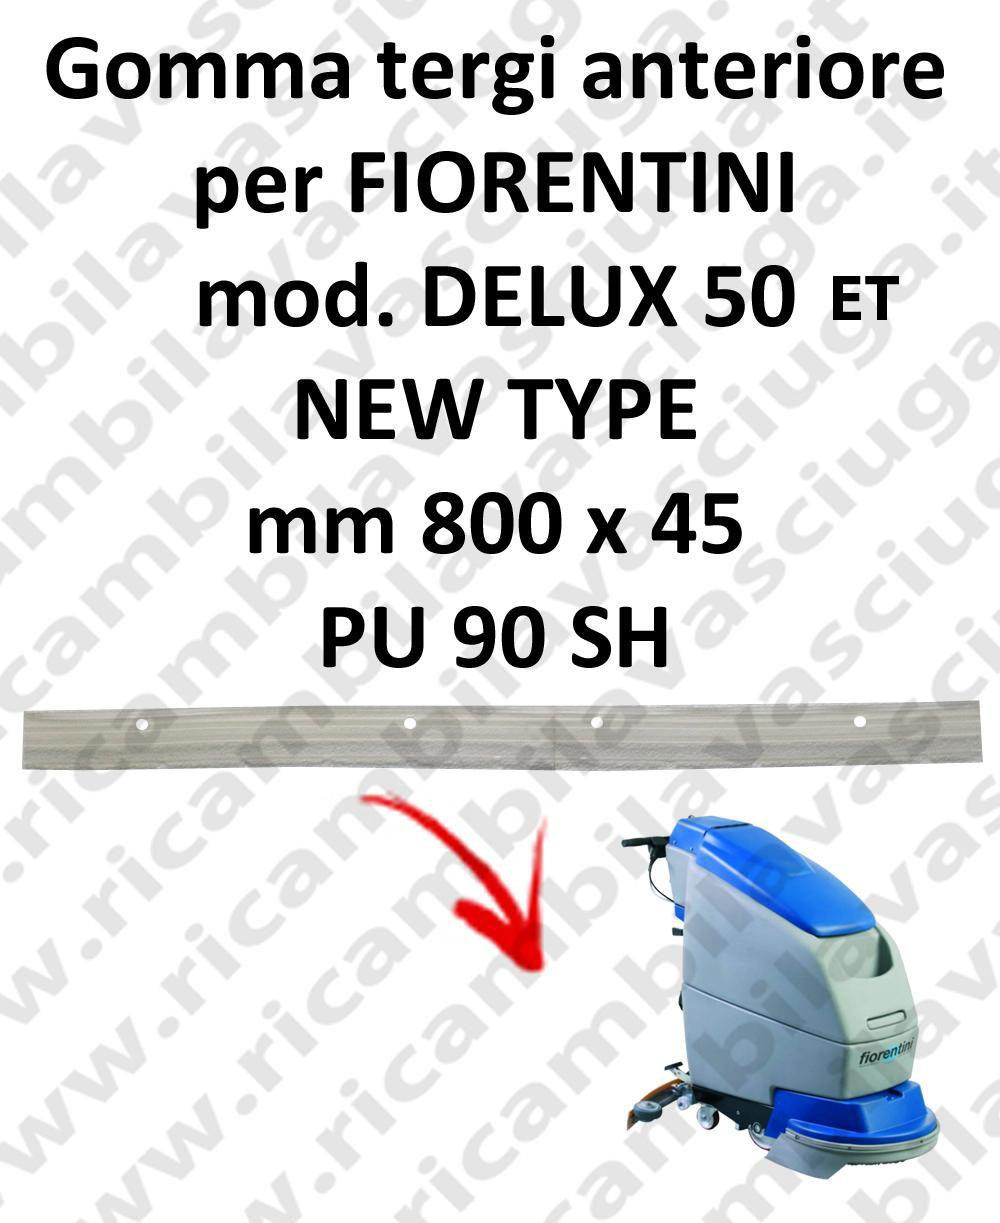 DELUX 50 ET new type Front Squeegee rubber for scrubber dryer  FIORENTINI